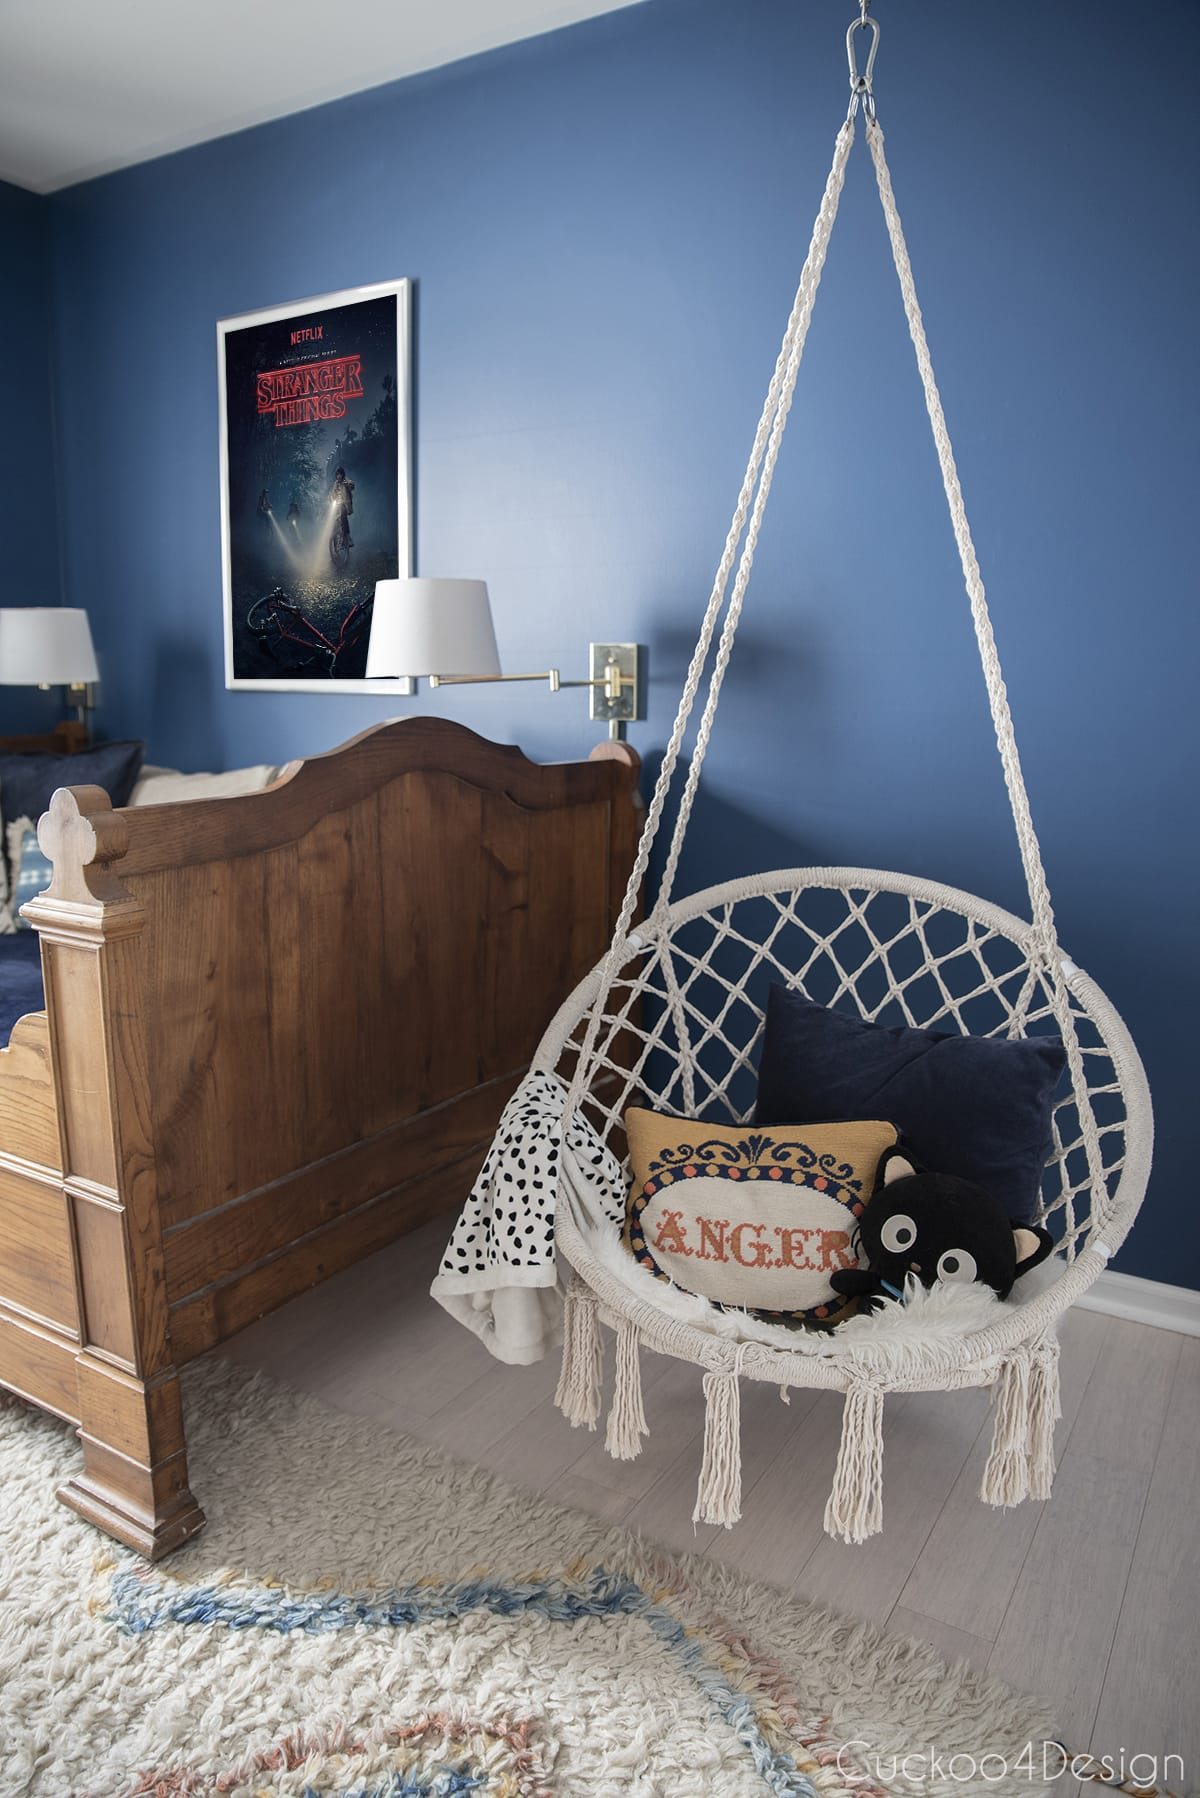 macrame hanging chair in girls bedroom with French antique bed